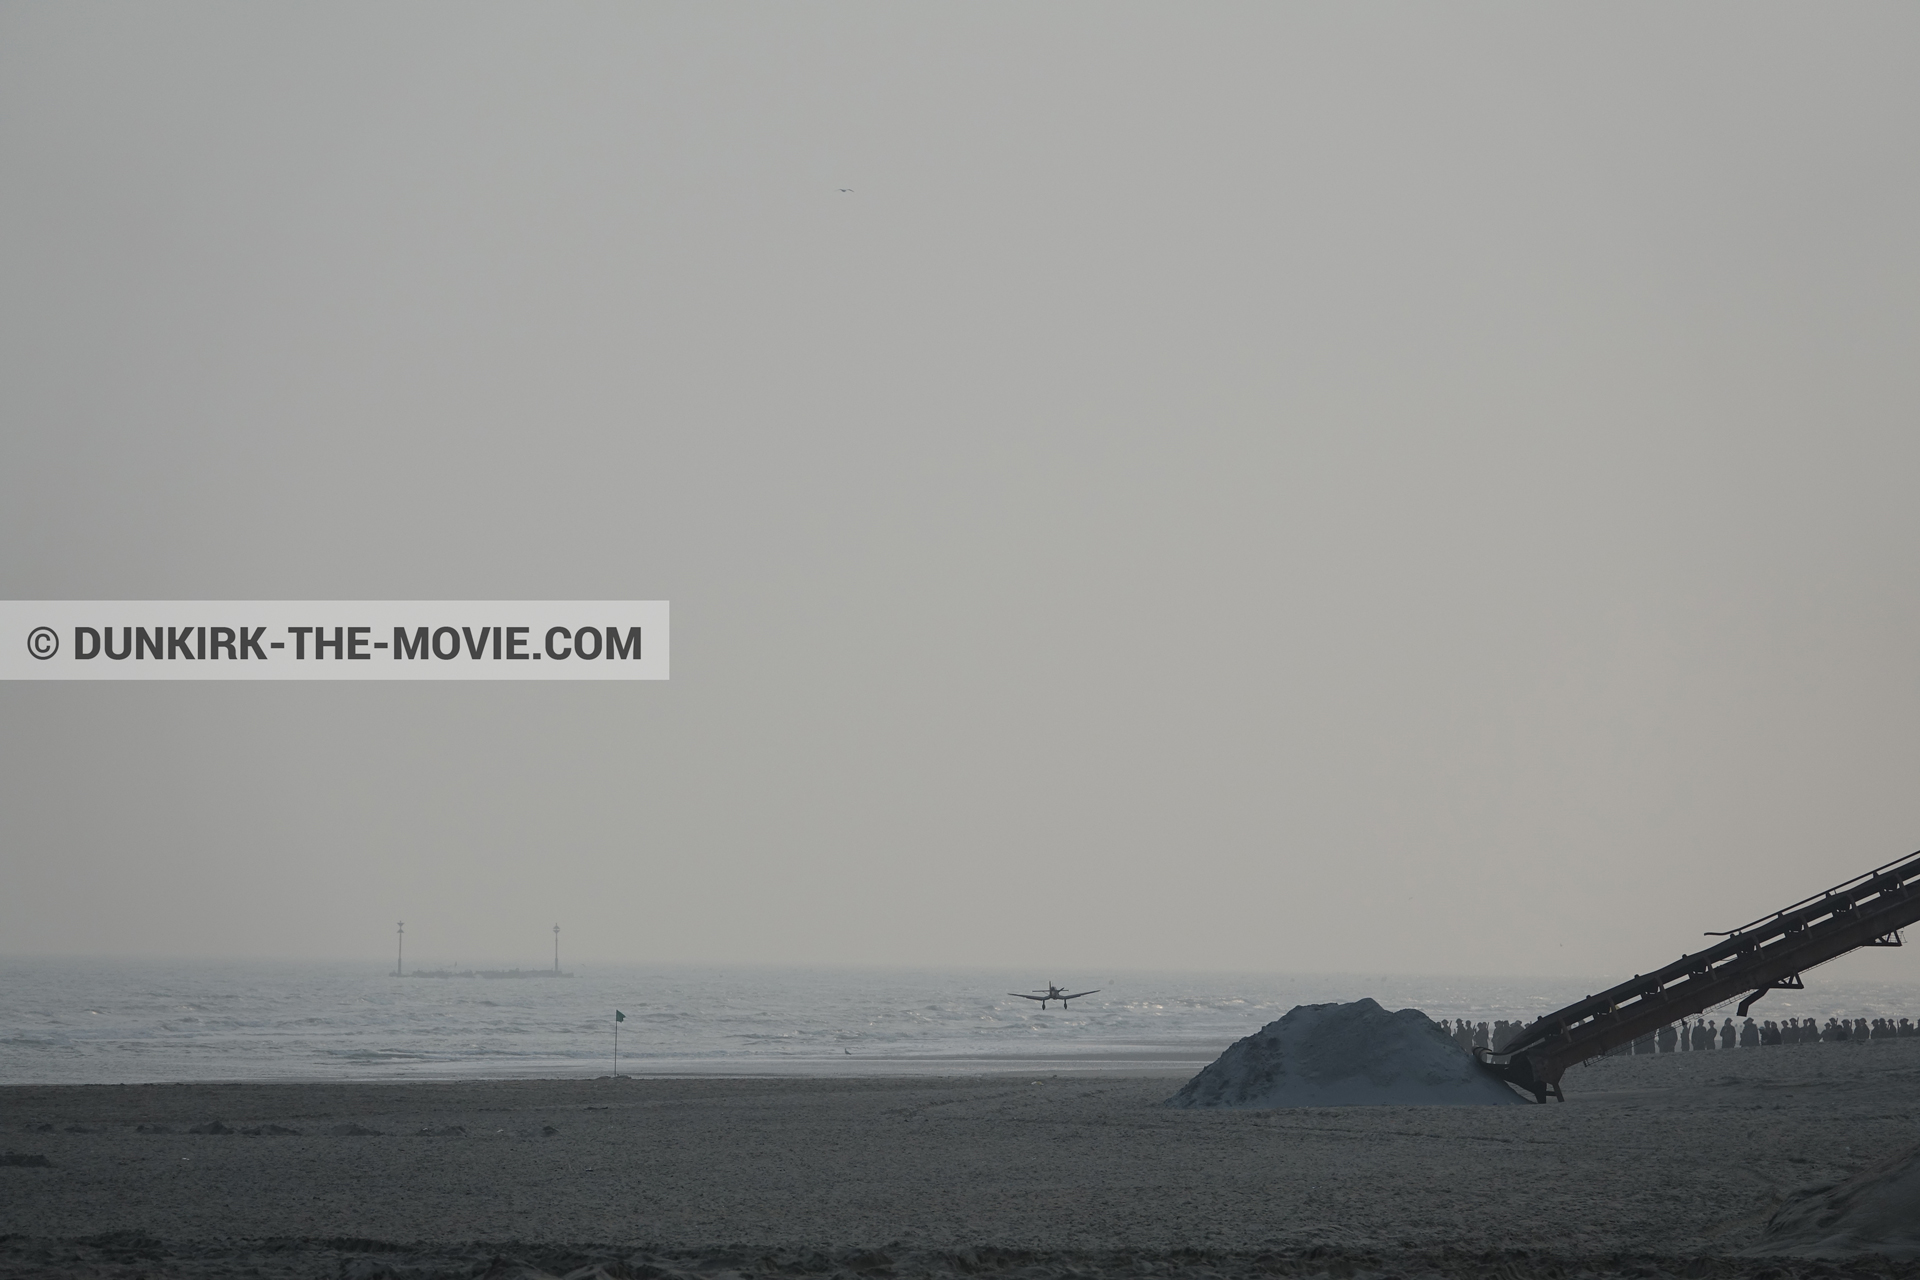 Picture with plane, grey sky, decor, supernumeraries, beach,  from behind the scene of the Dunkirk movie by Nolan